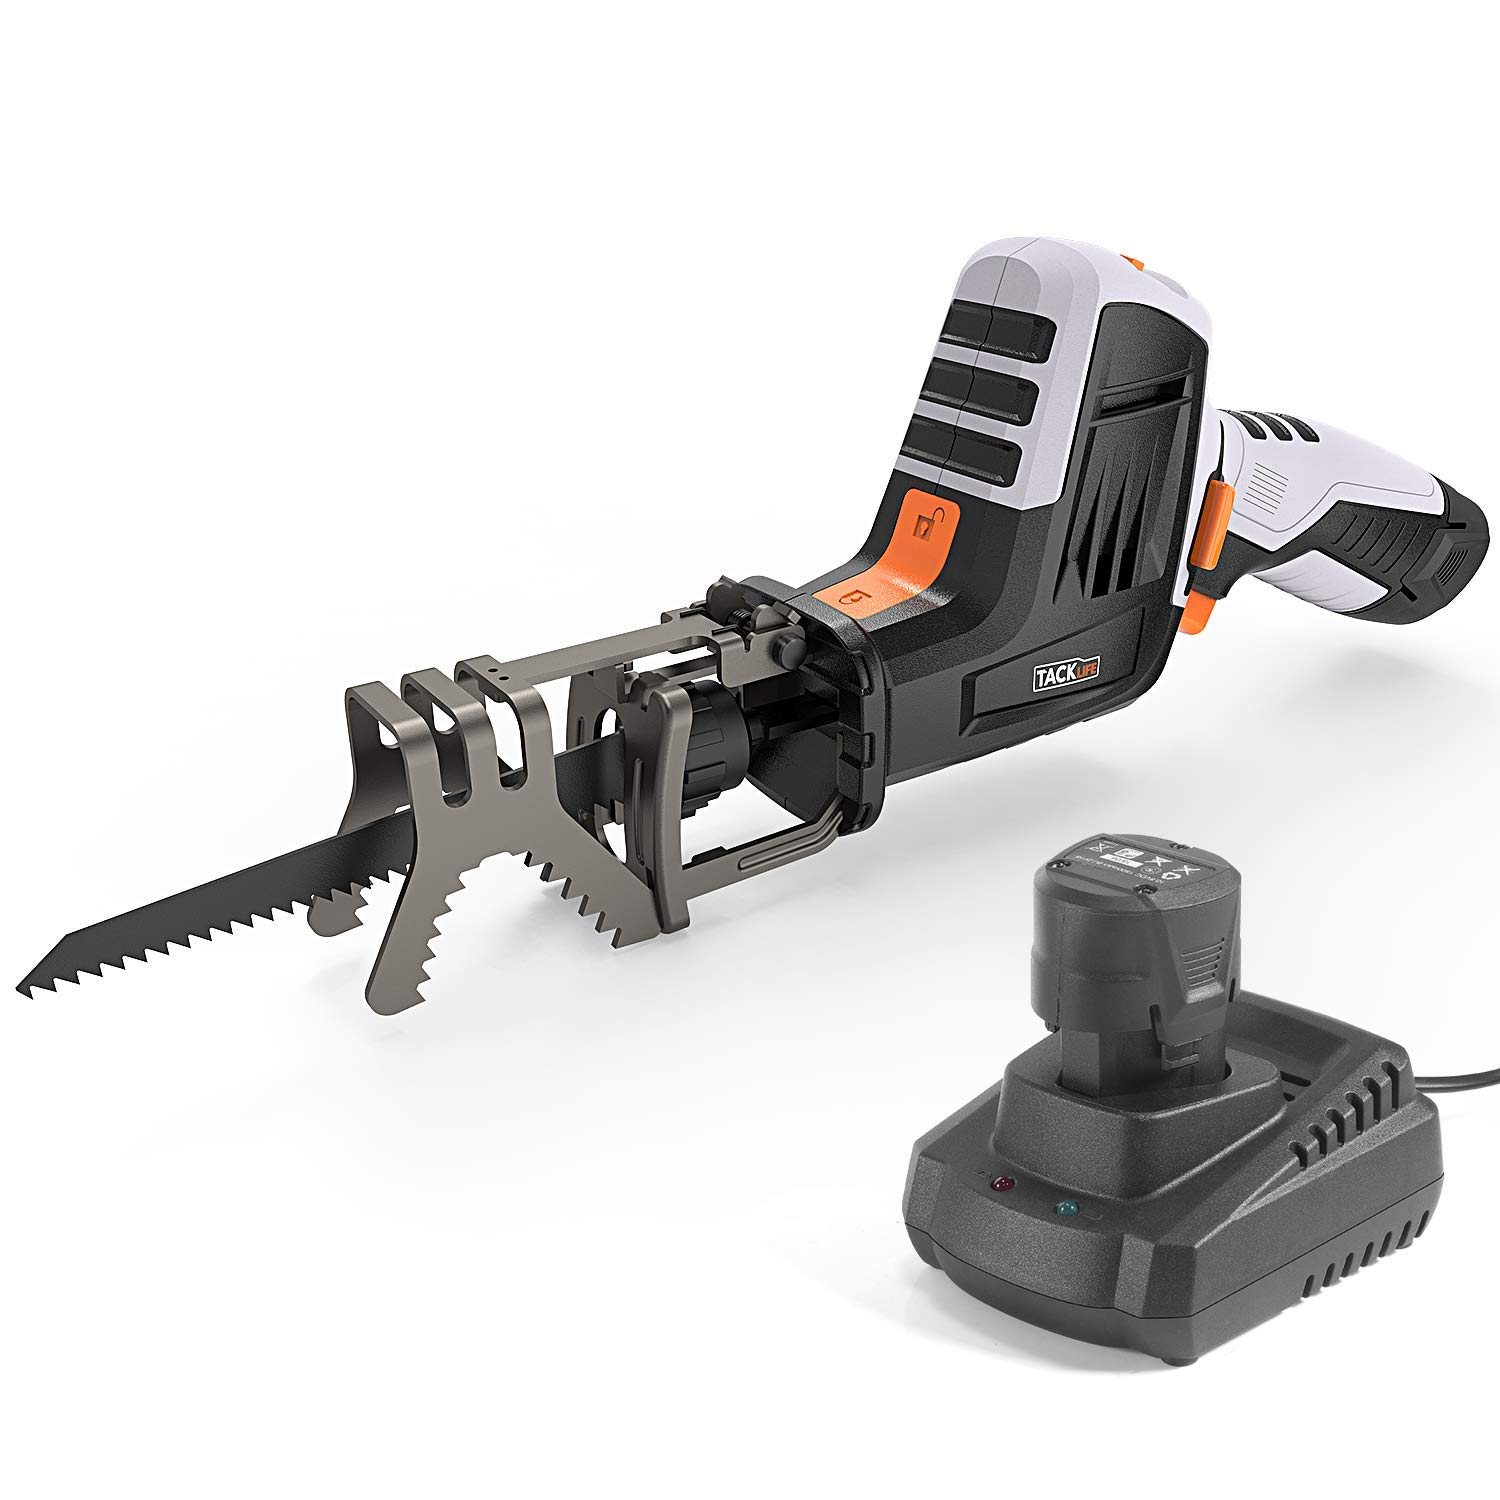 TACKLIFE Advanced 12-Volt Max Reciprocating Saw with 1500mAh Lithium-Ion Battery, Cordless Reciprocating Saw Includes Clamping Jaw, Variable Speed, Battery Indicator, 1 Hour Fast Charger - RES001 by TACKLIFE